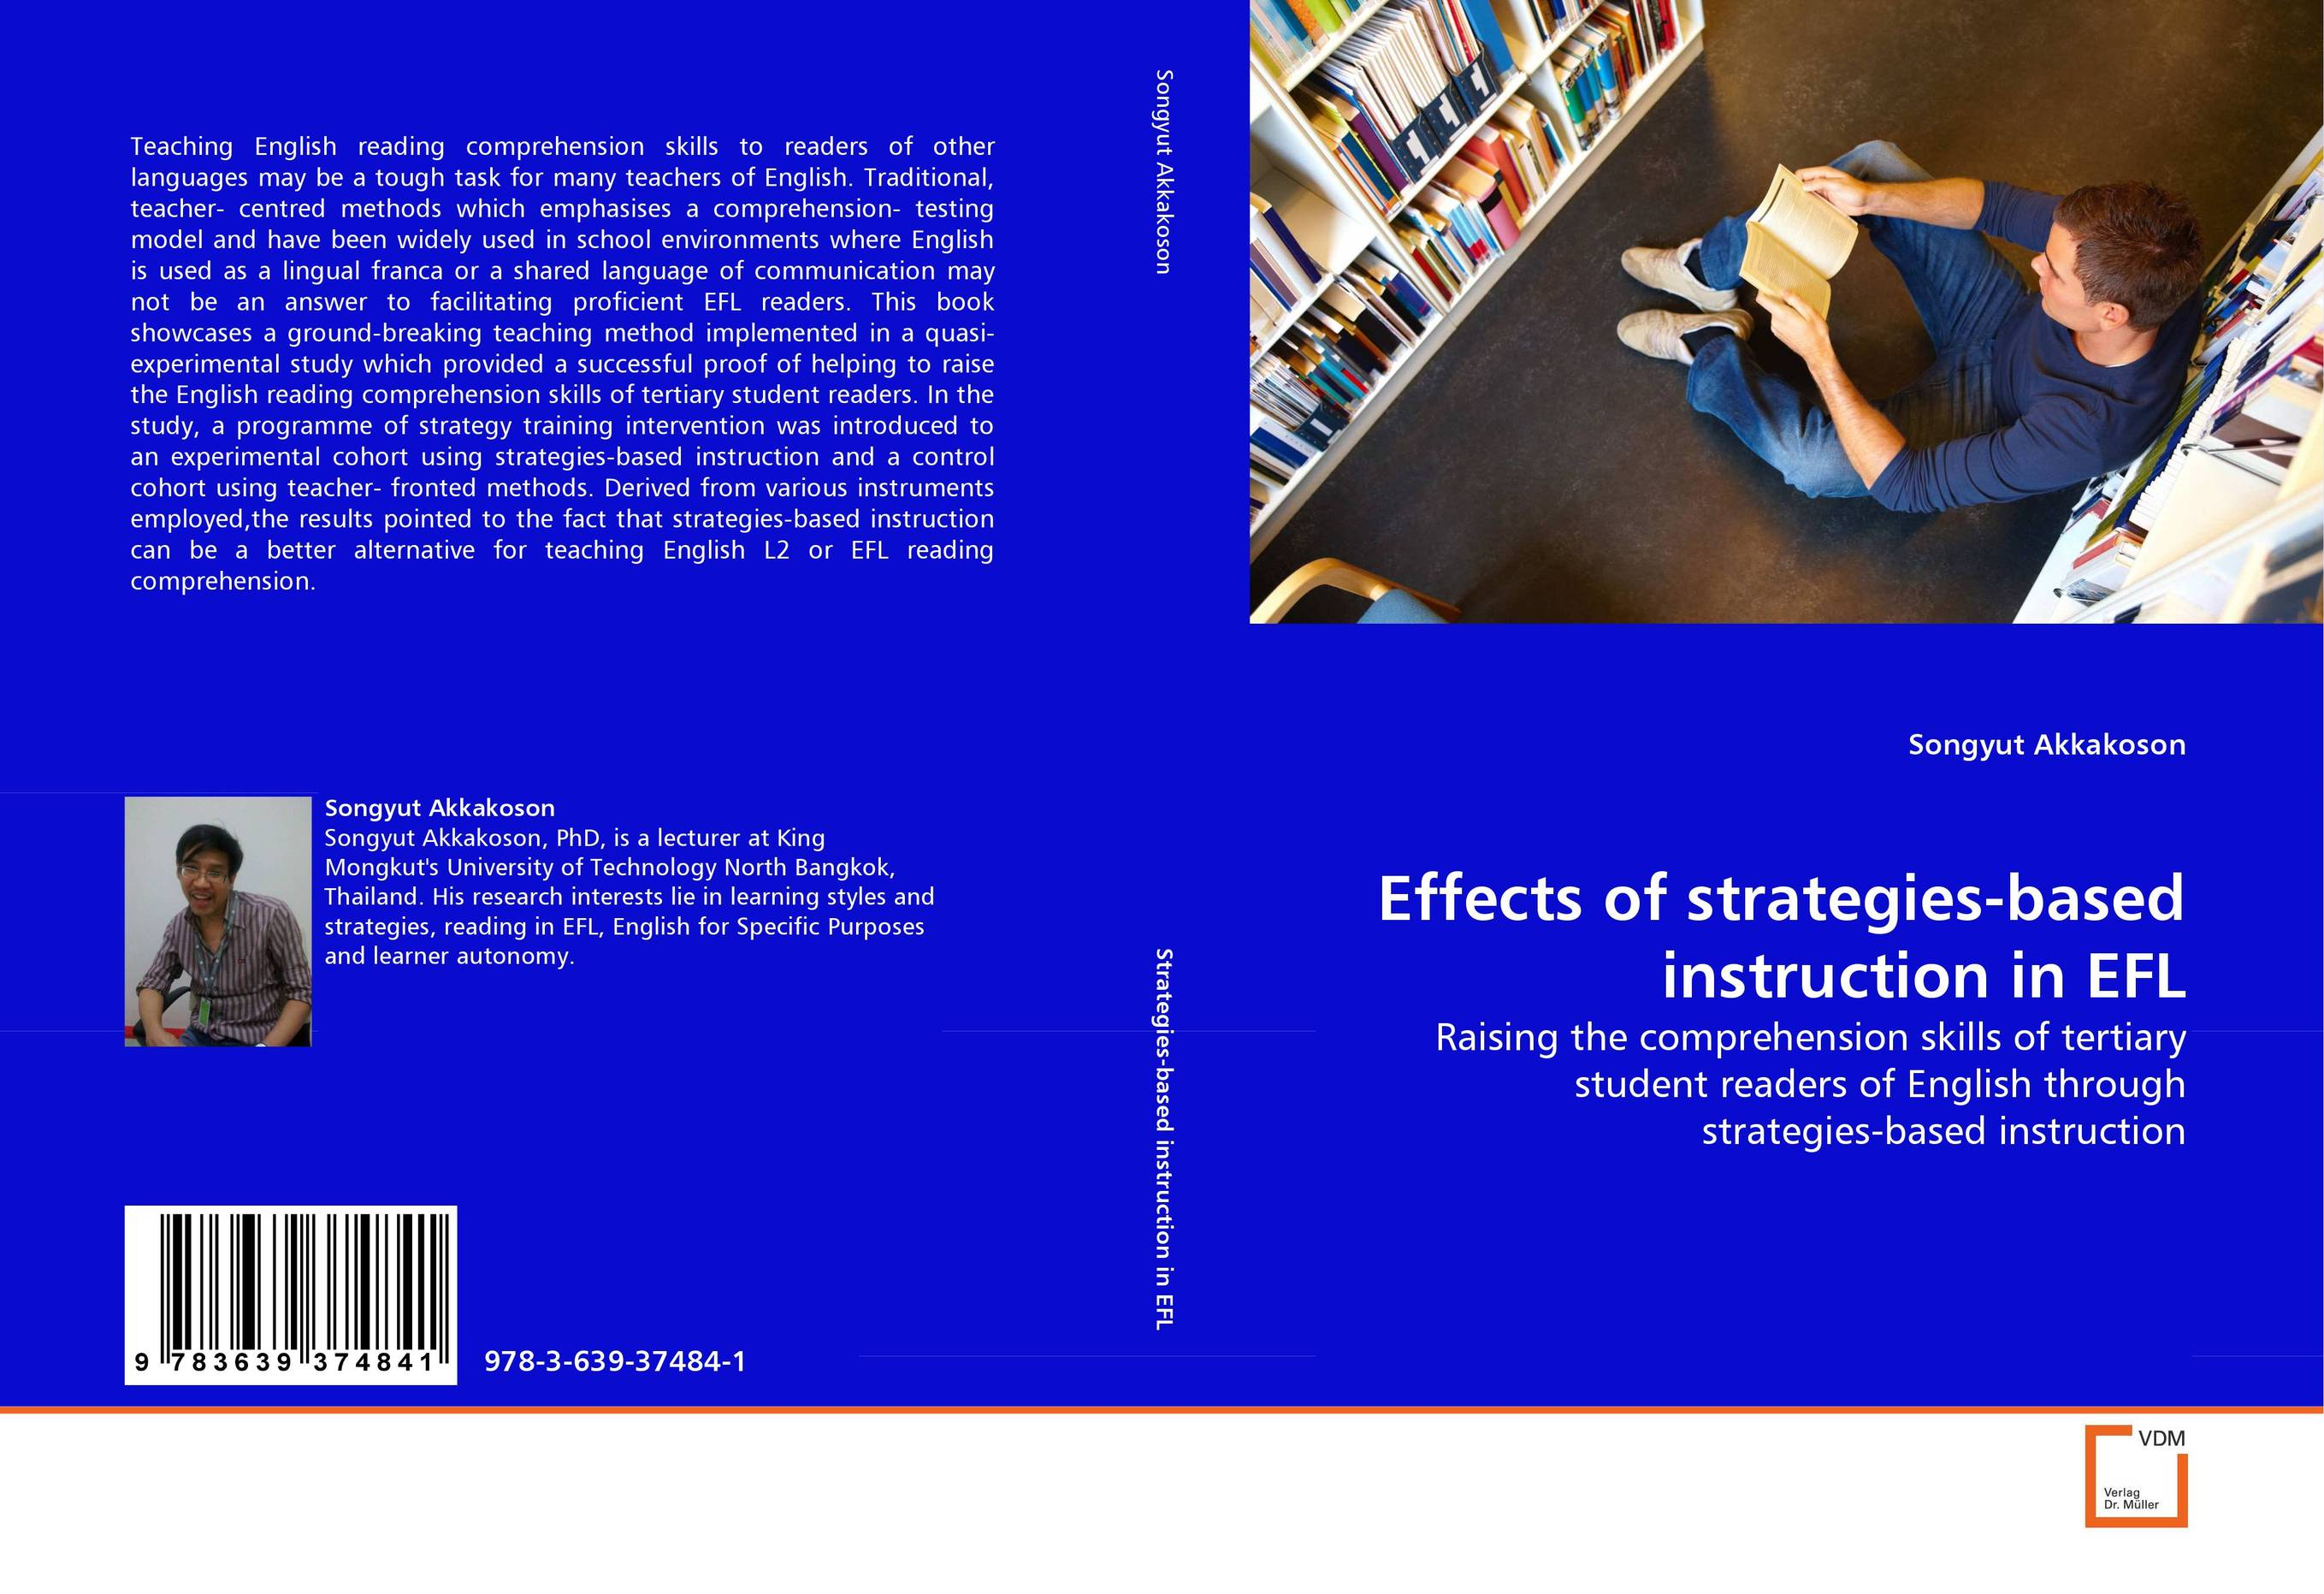 Effects of strategies-based instruction in EFL